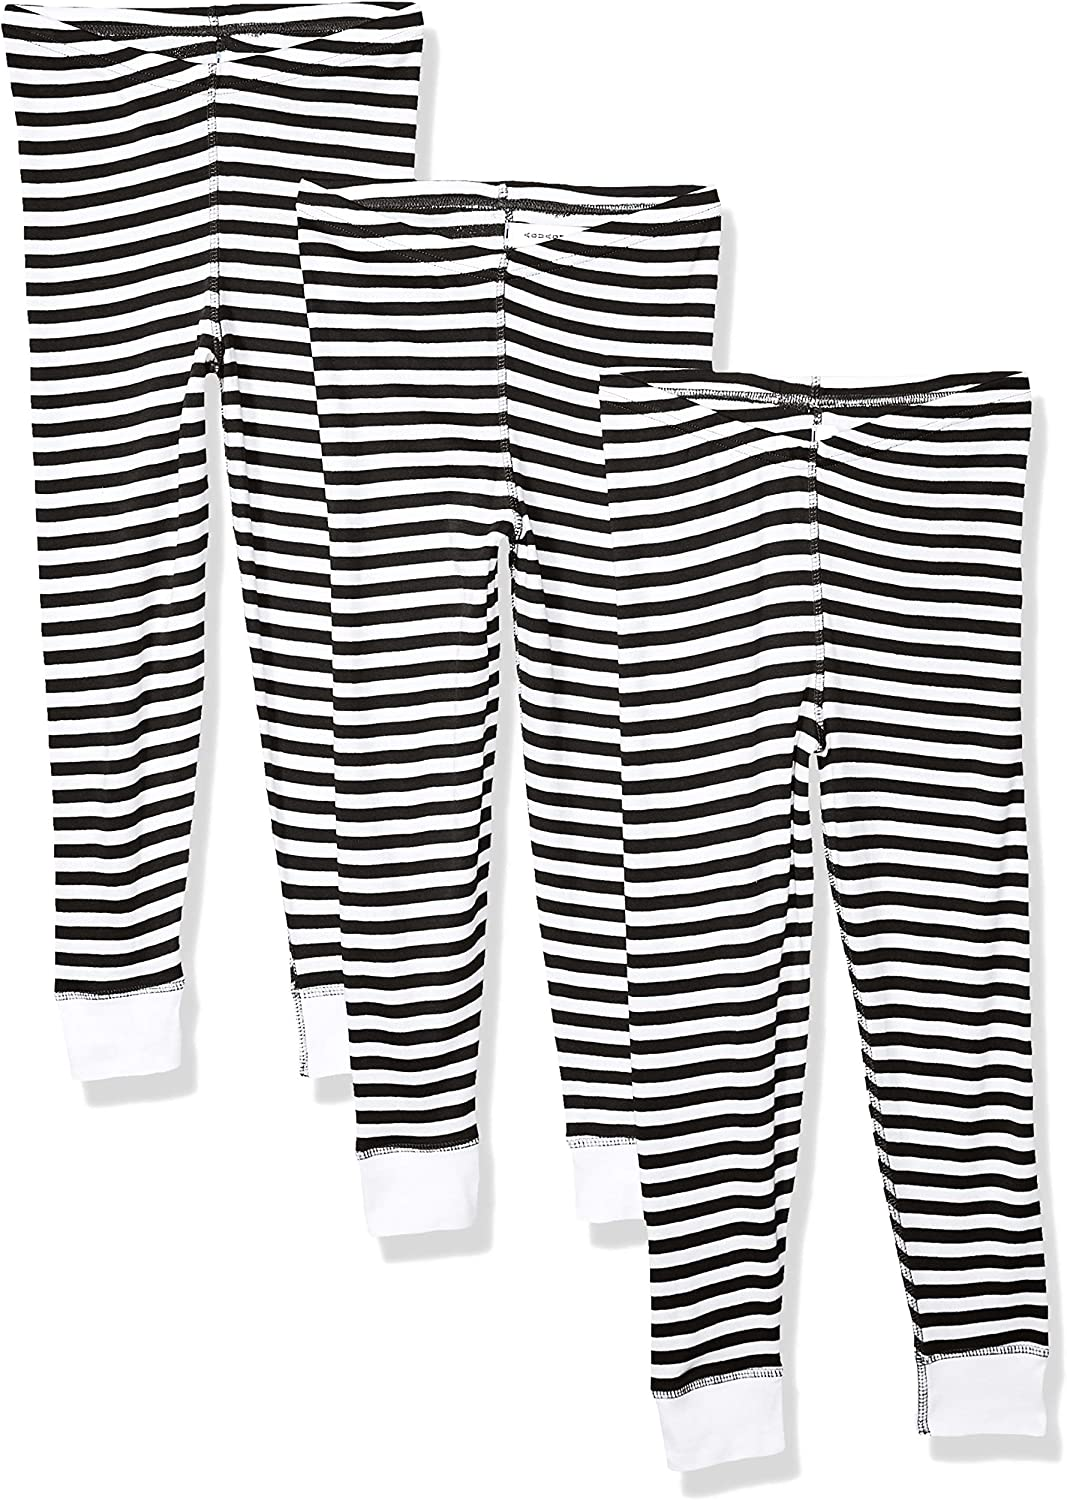 AquaGuard Girls Big Baby Rib Pajama Pant-3 Pack